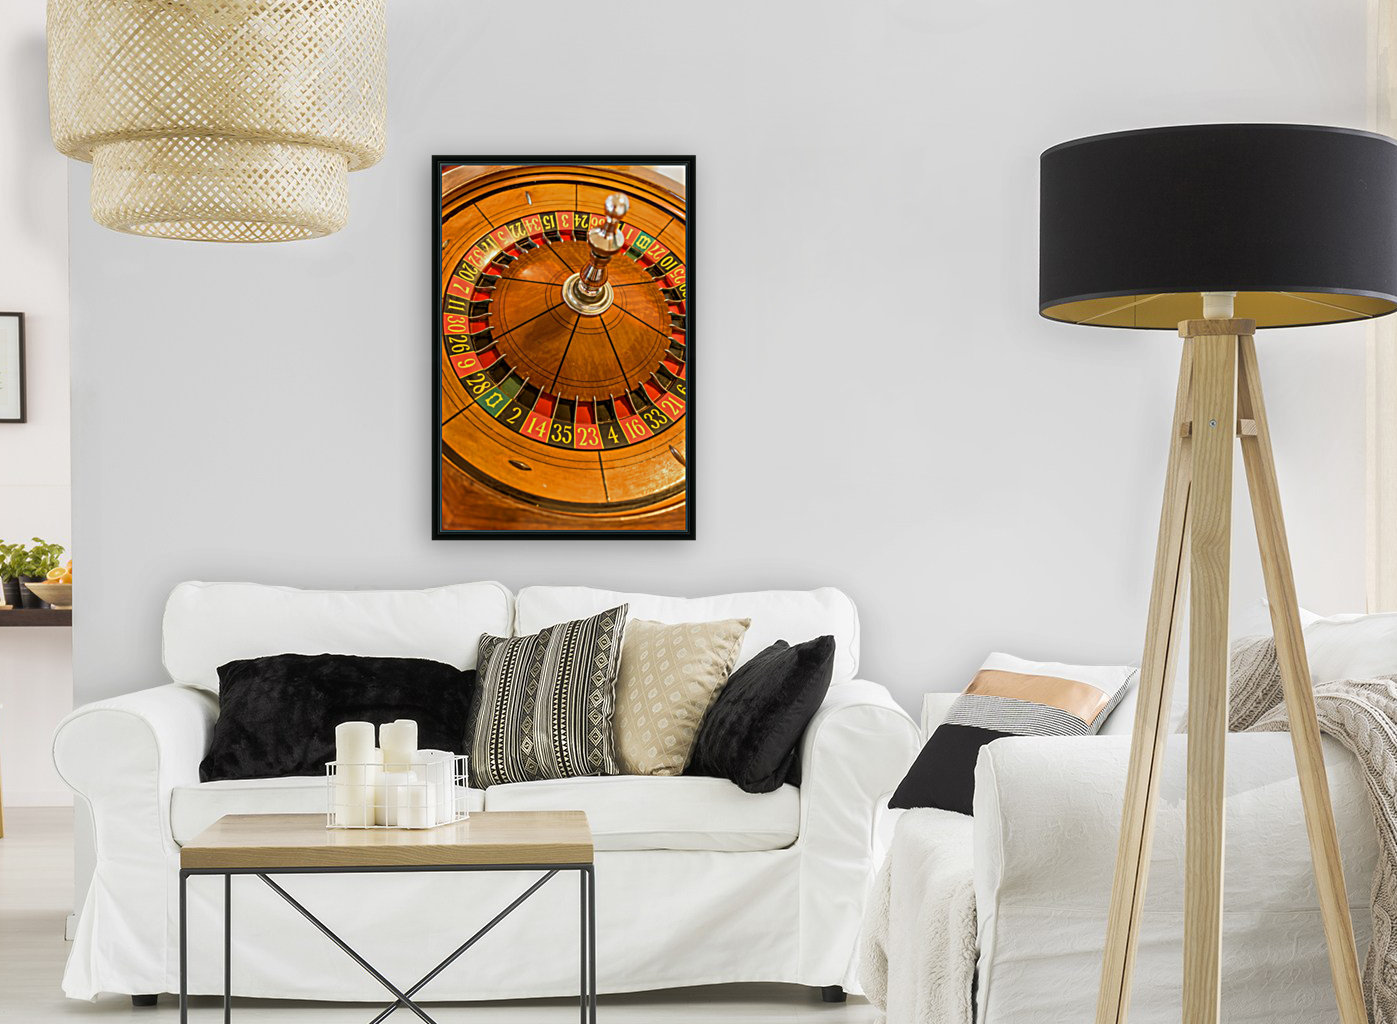 Round, wooden roulette wheel with numbers around the wheel  Art